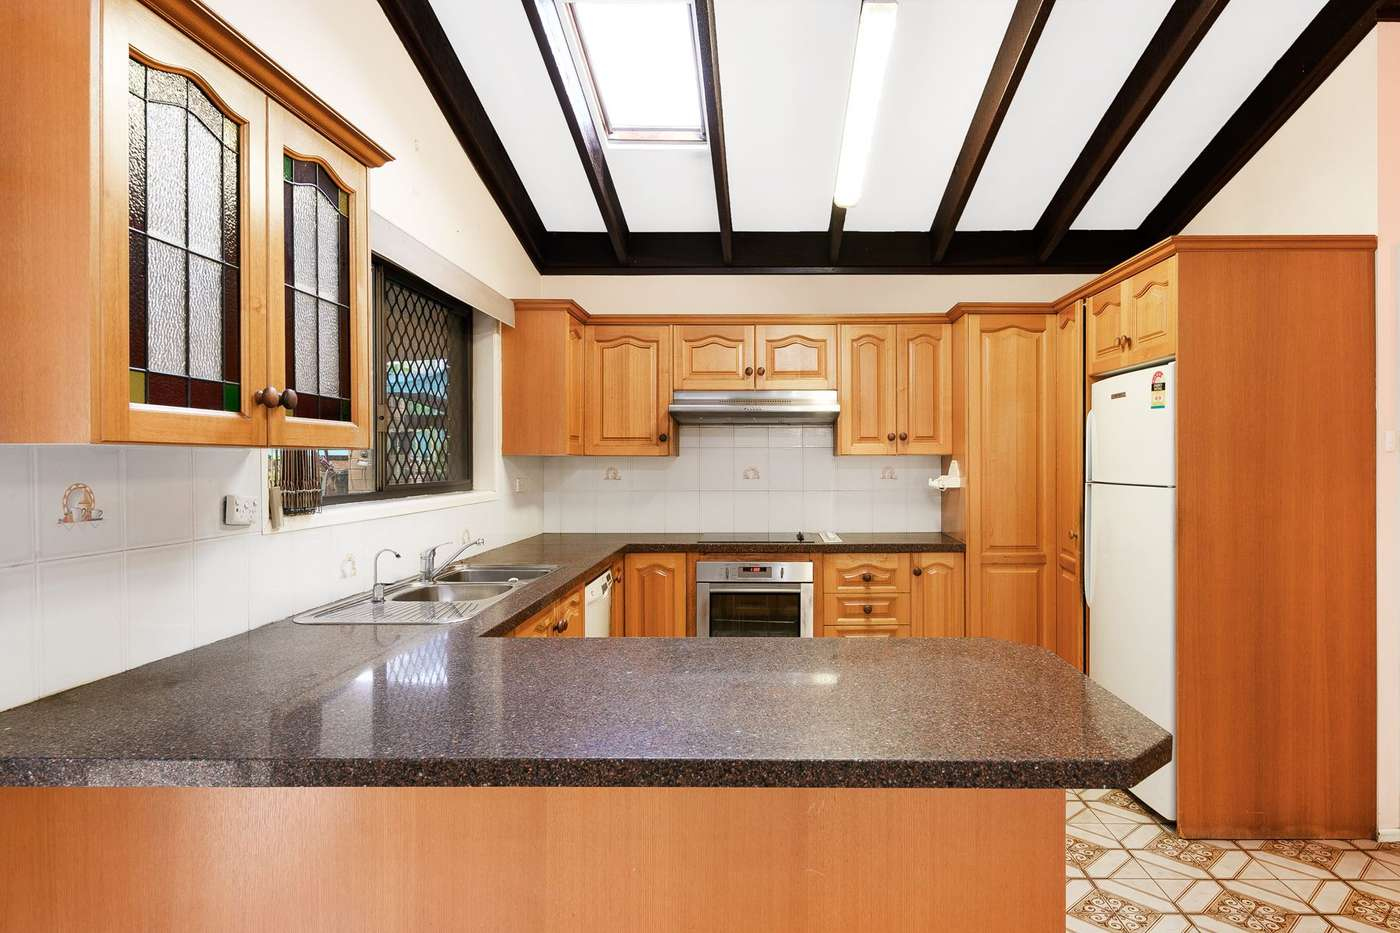 Main view of Homely house listing, 2 Garozzo Street, Boondall, QLD 4034